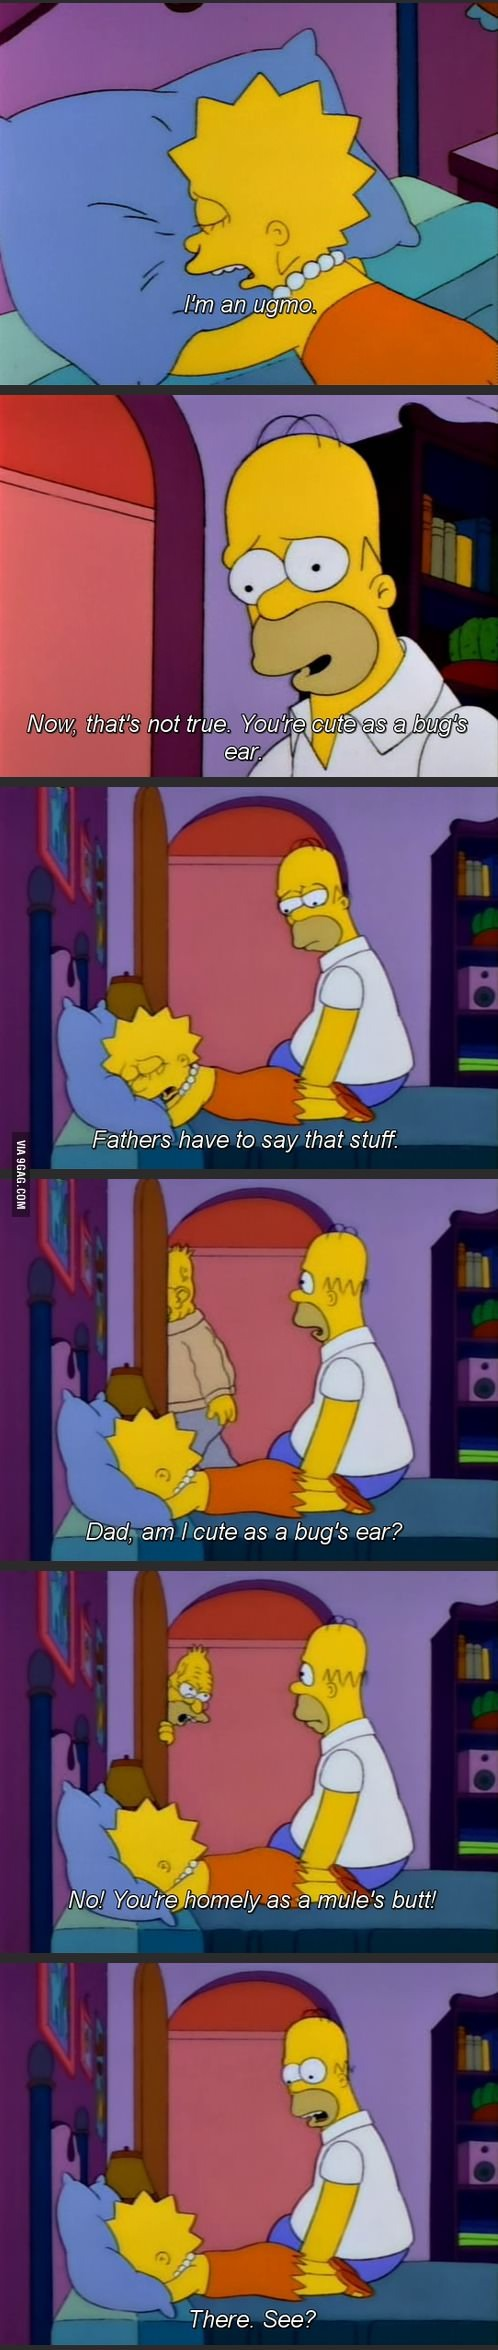 simpsons ♡ - meme